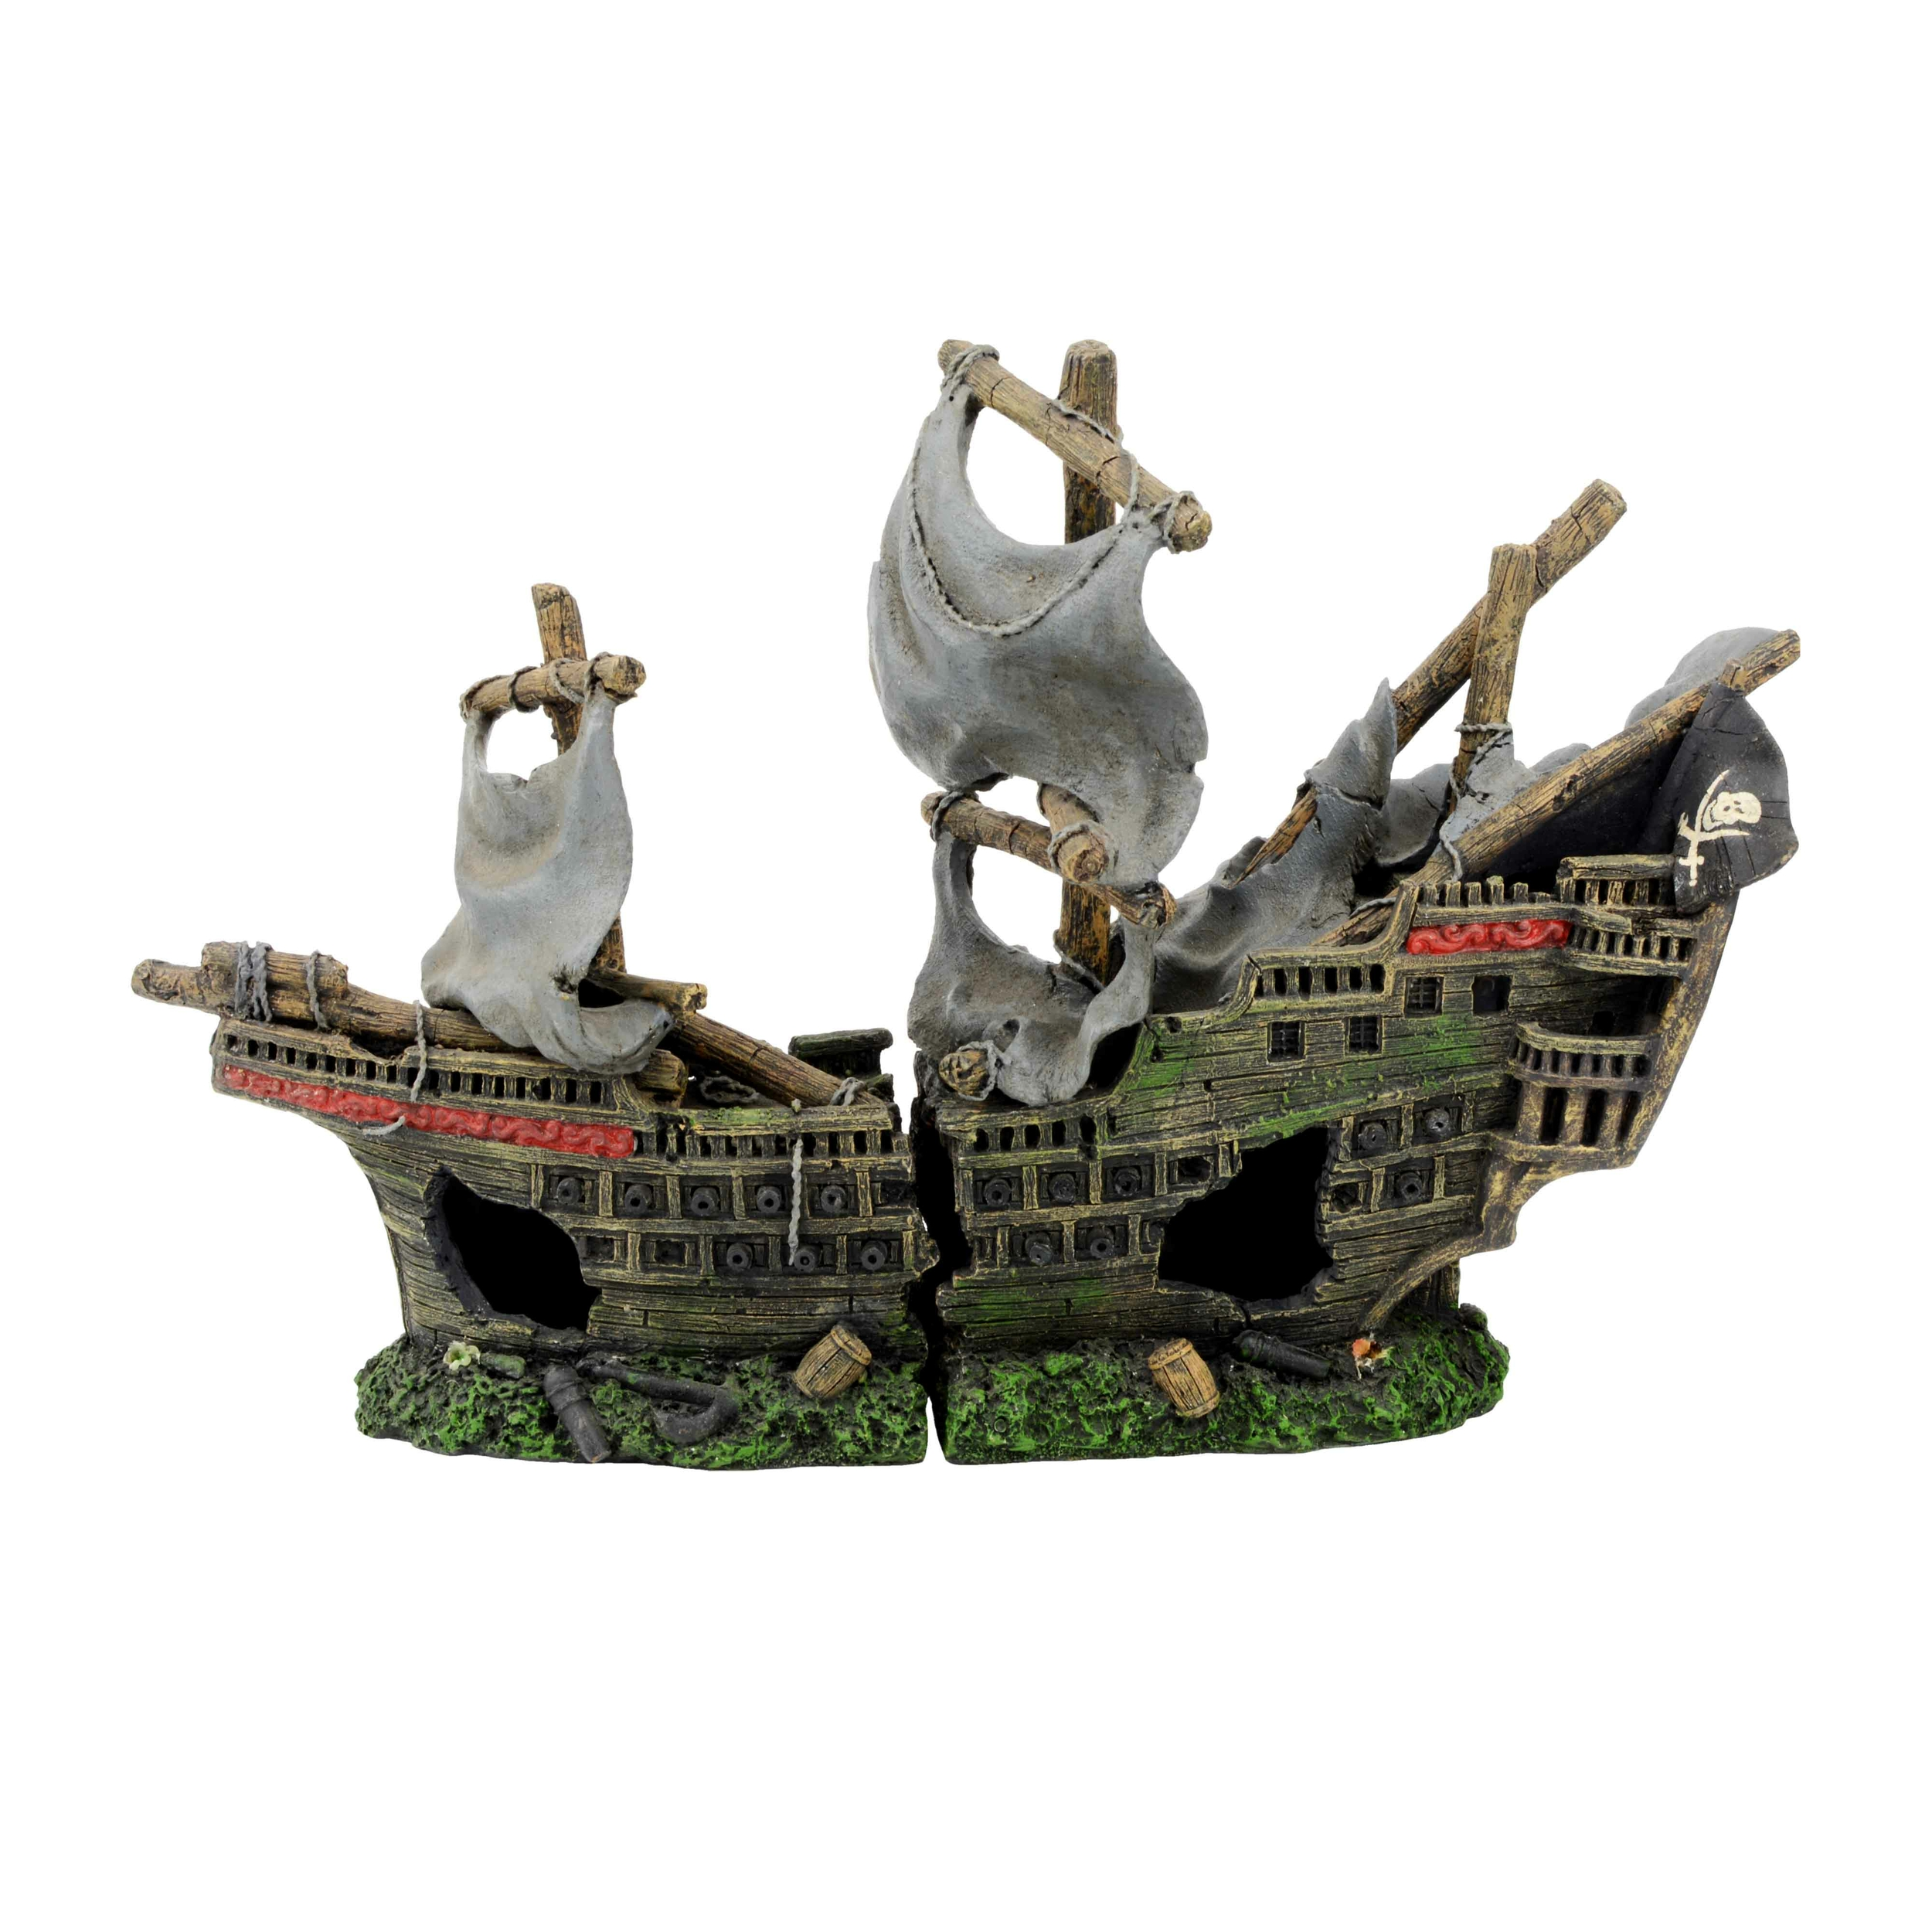 AQUAVIE Bateau Pirate en 2 parties décoration aquarium 42 x 14 x 26 cm